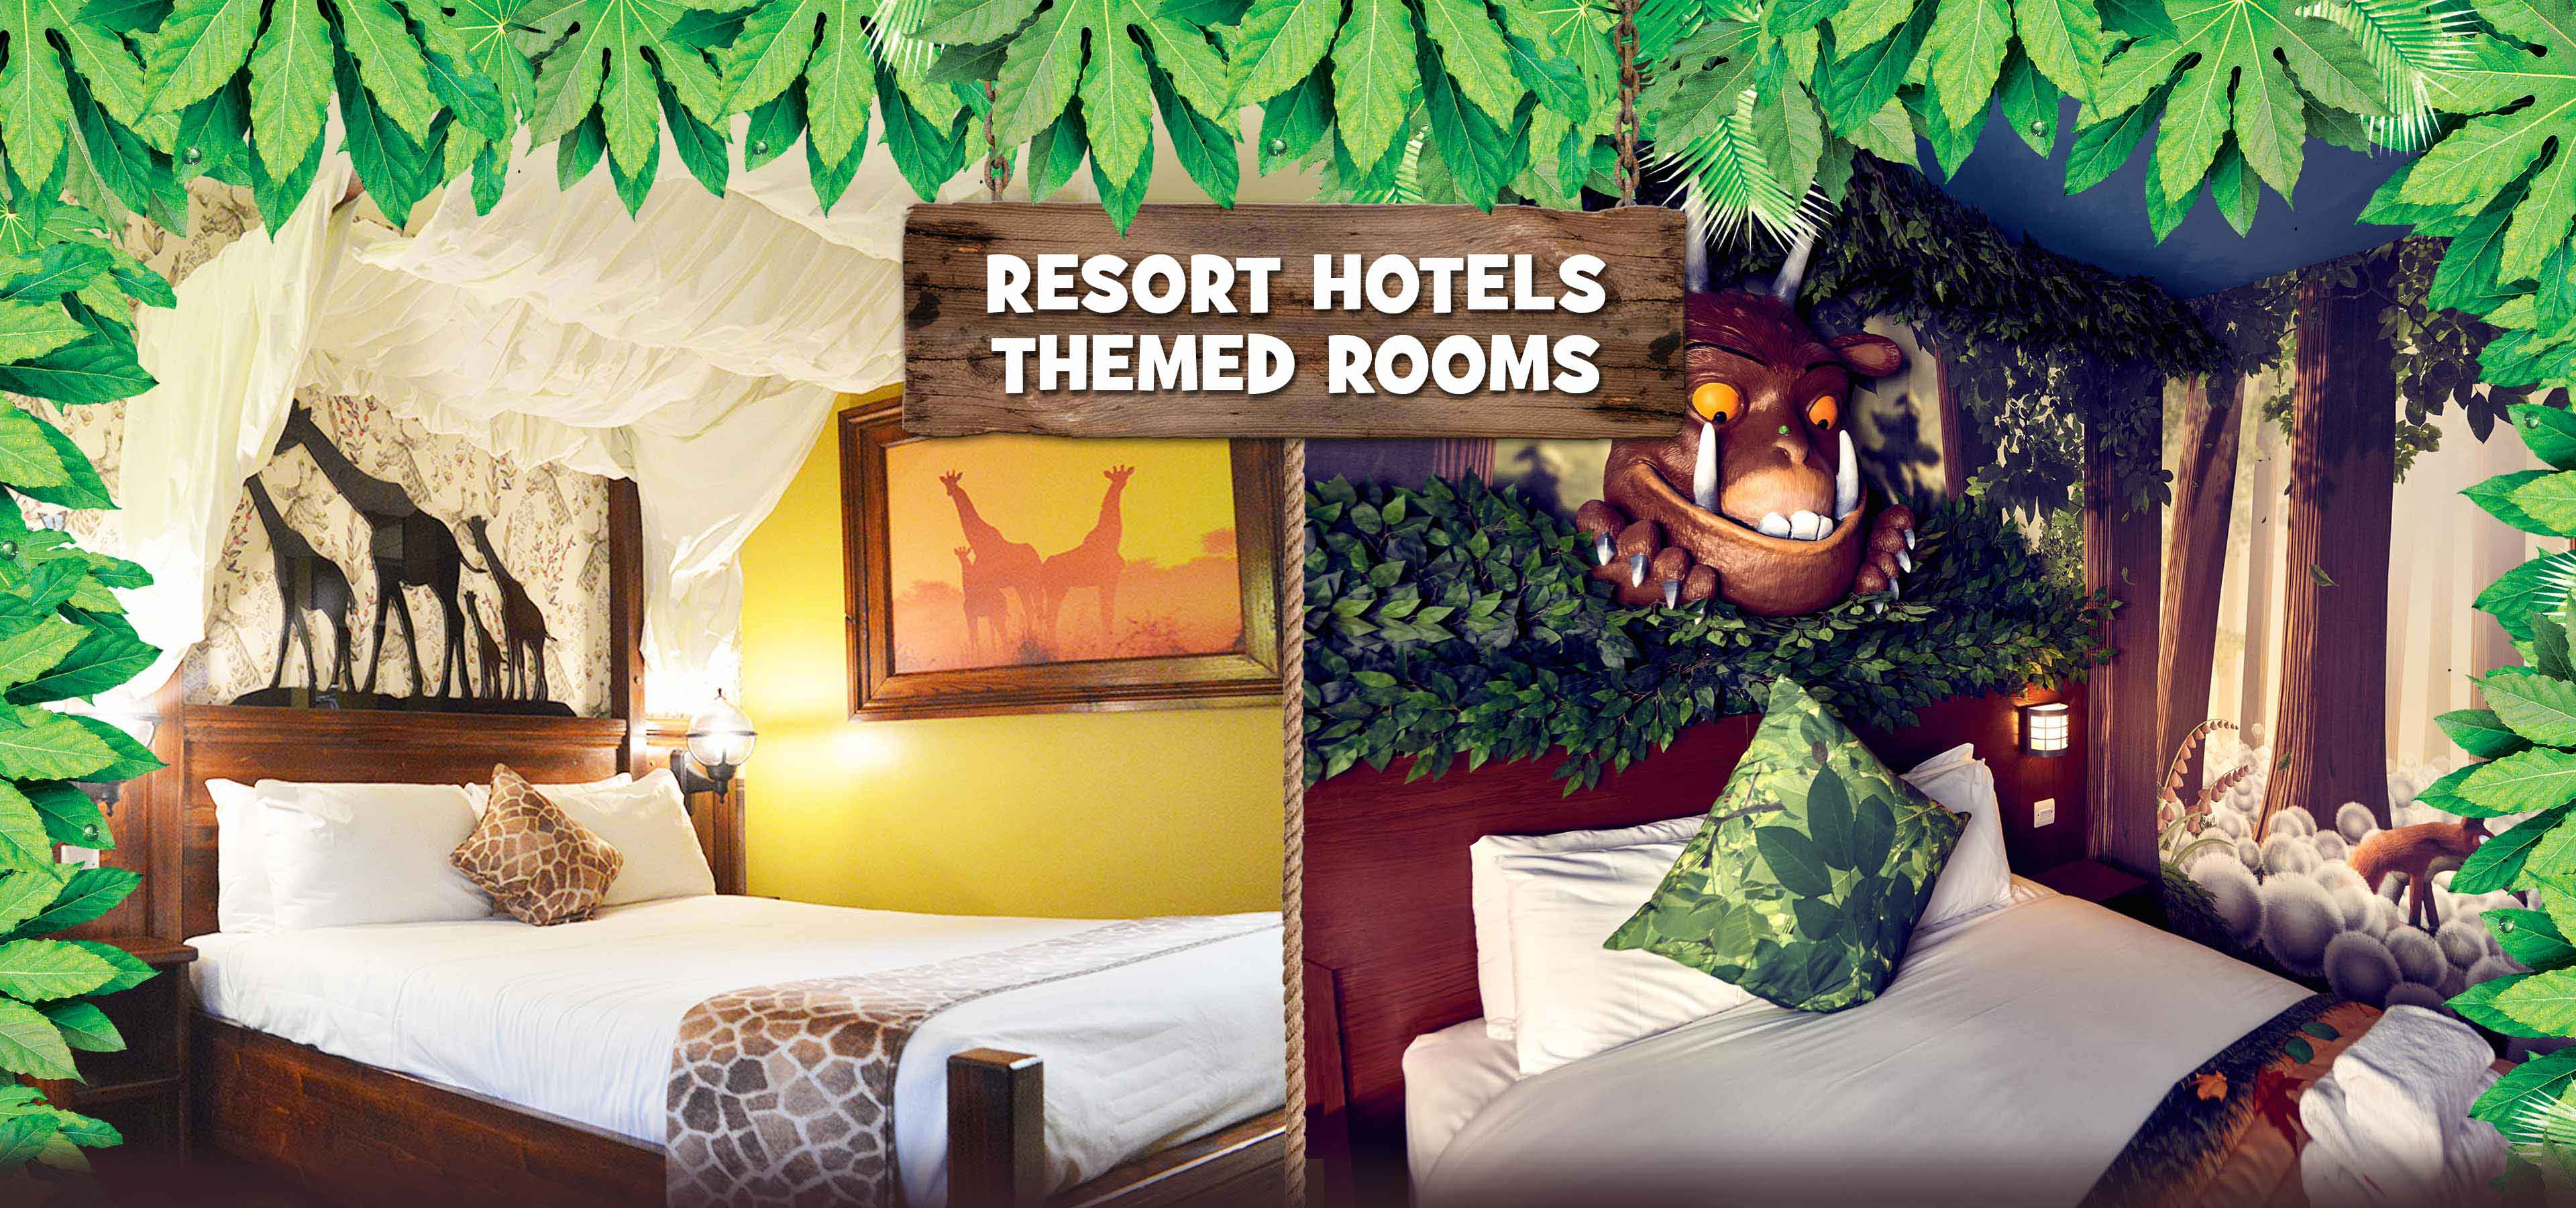 themed hotel rooms themed hotel rooms at chessington resort 29571